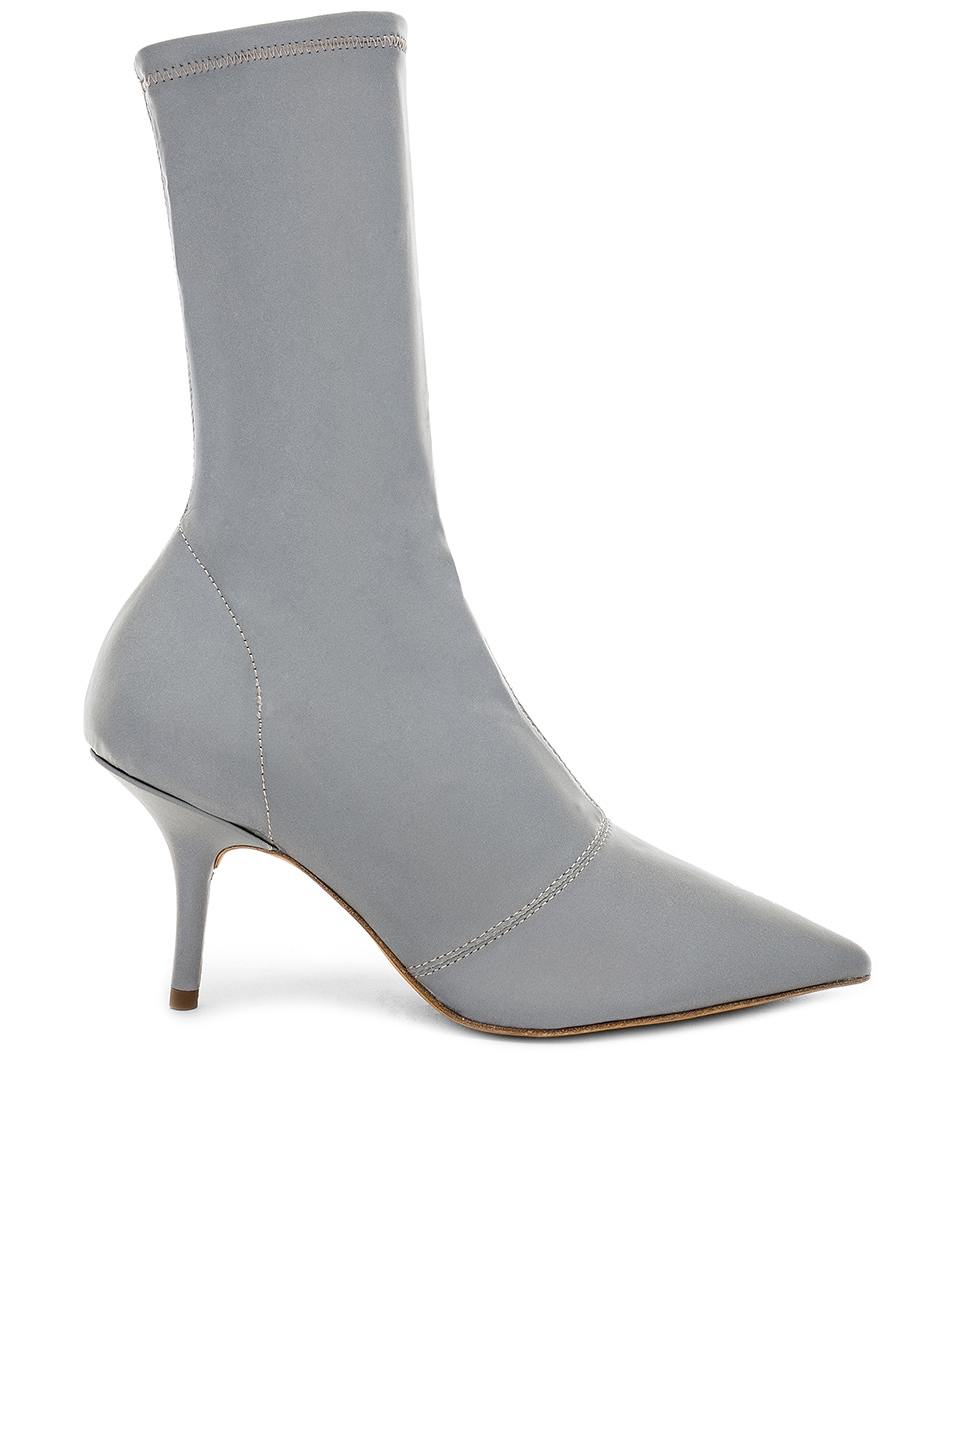 Chrome Reflective Ankle Boot 70mm Heel in Silver